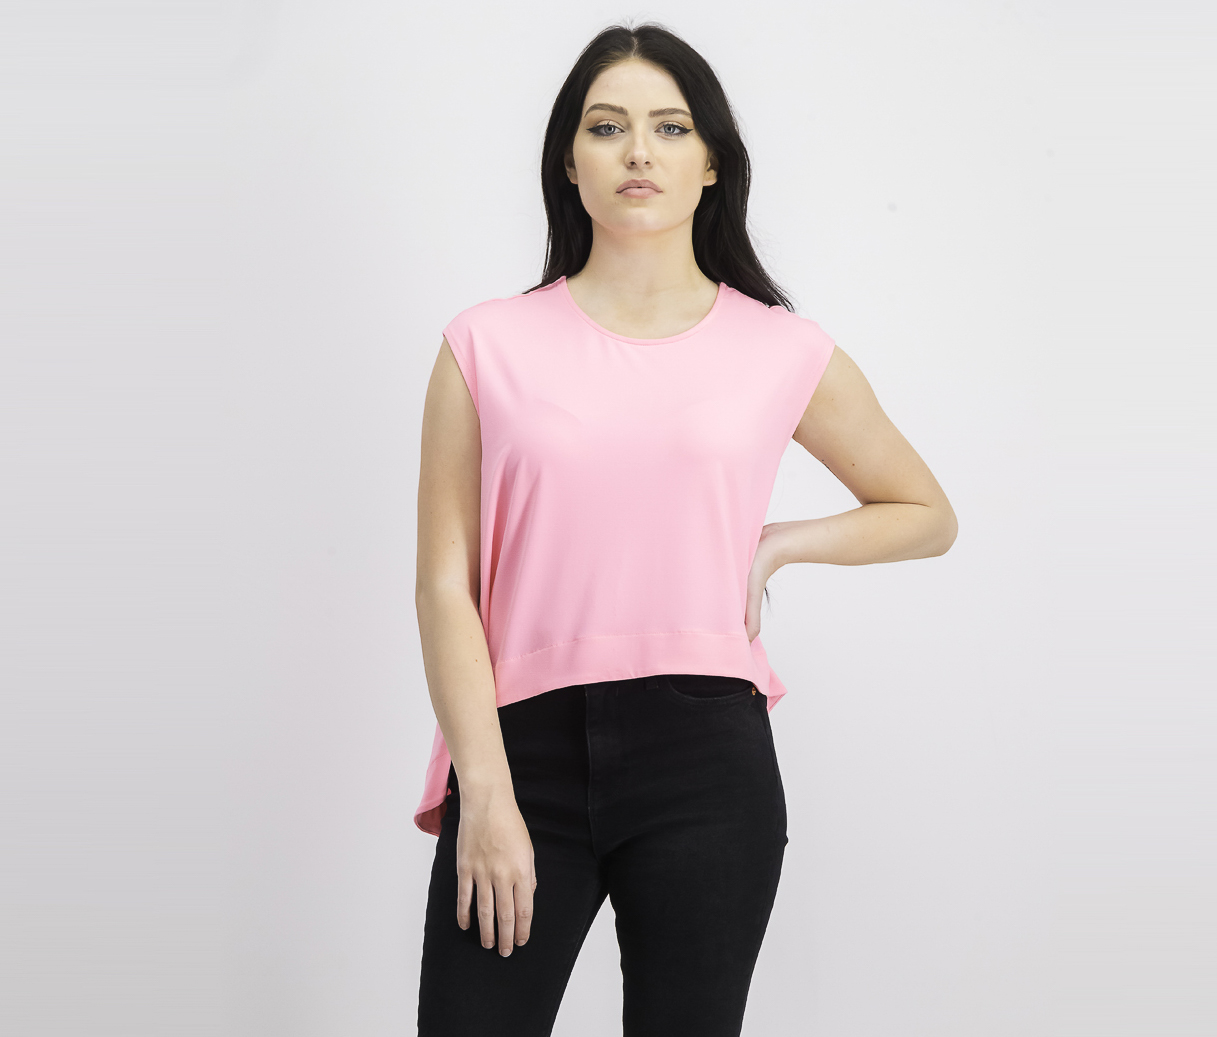 Women's Asymmetrical Crop Top, Neon Flamingo